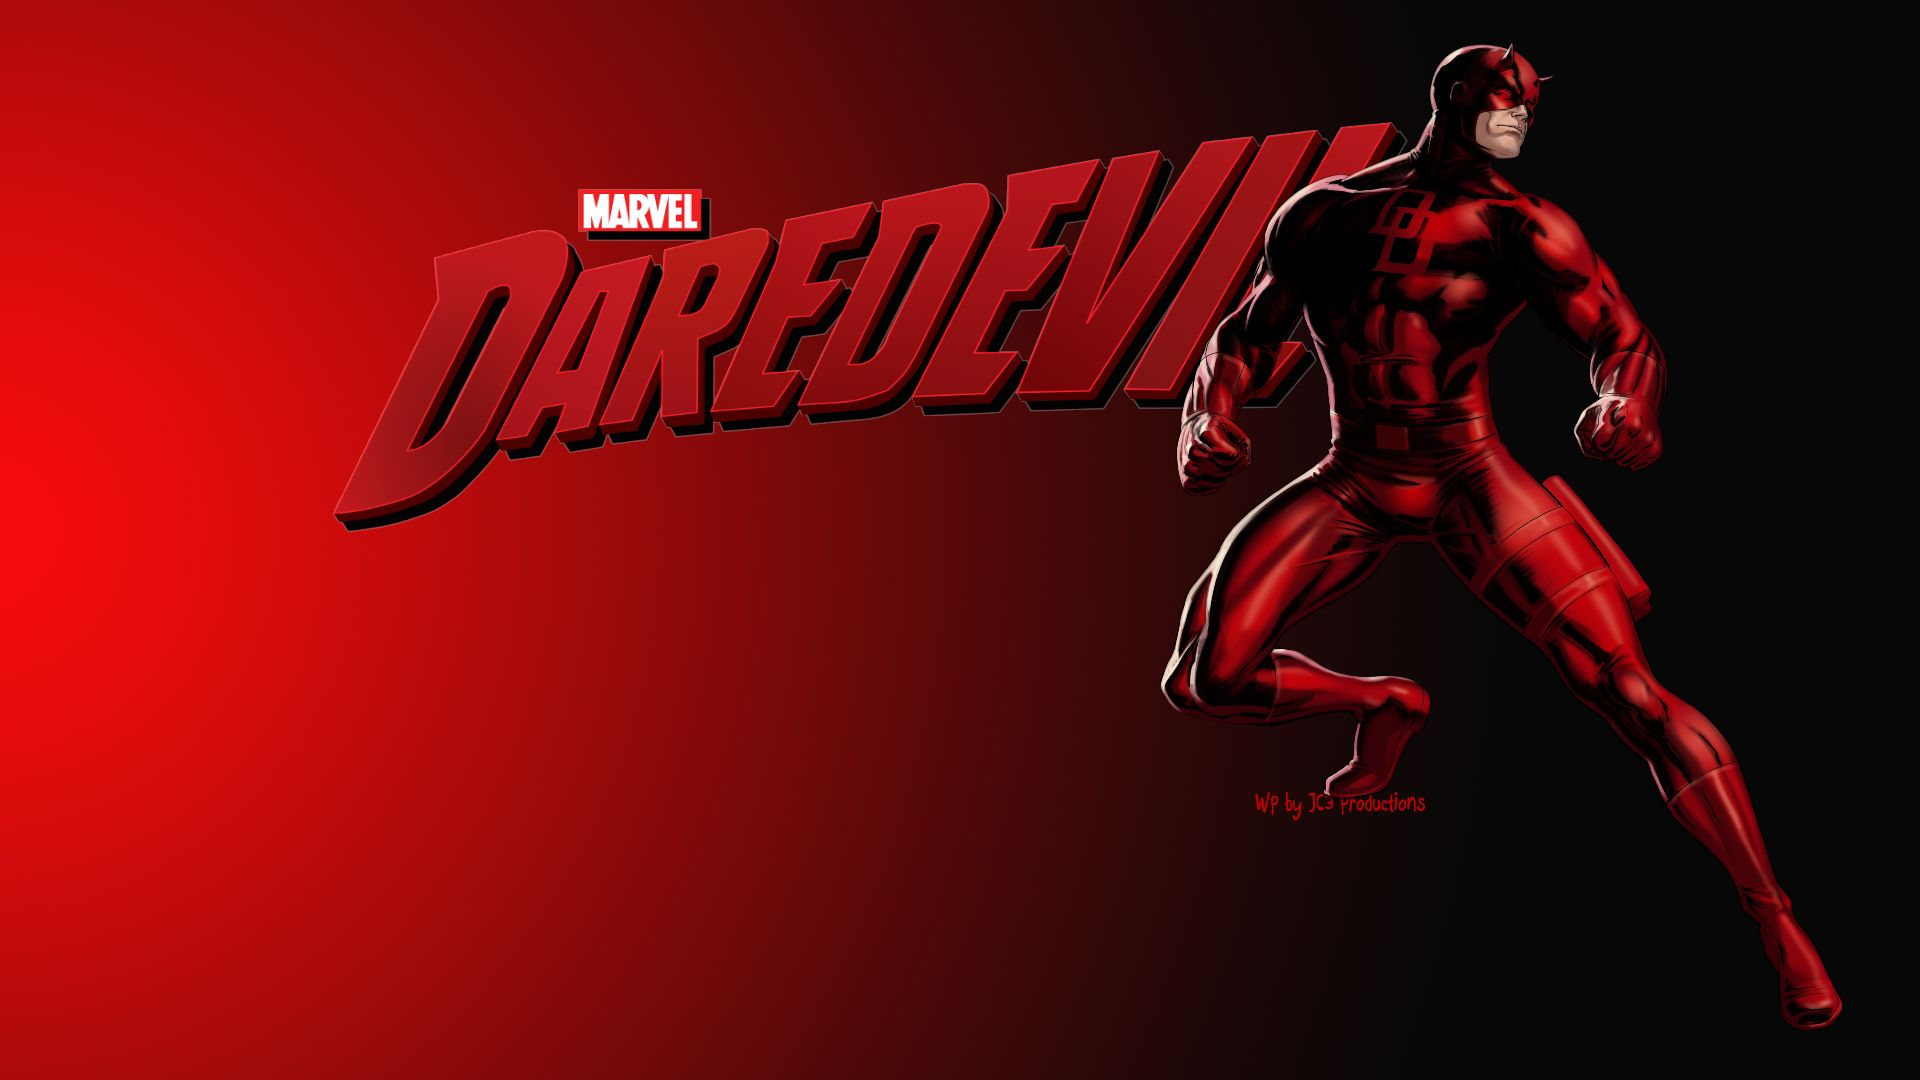 Daredevil images Daredevil 2 HD wallpaper and background photos